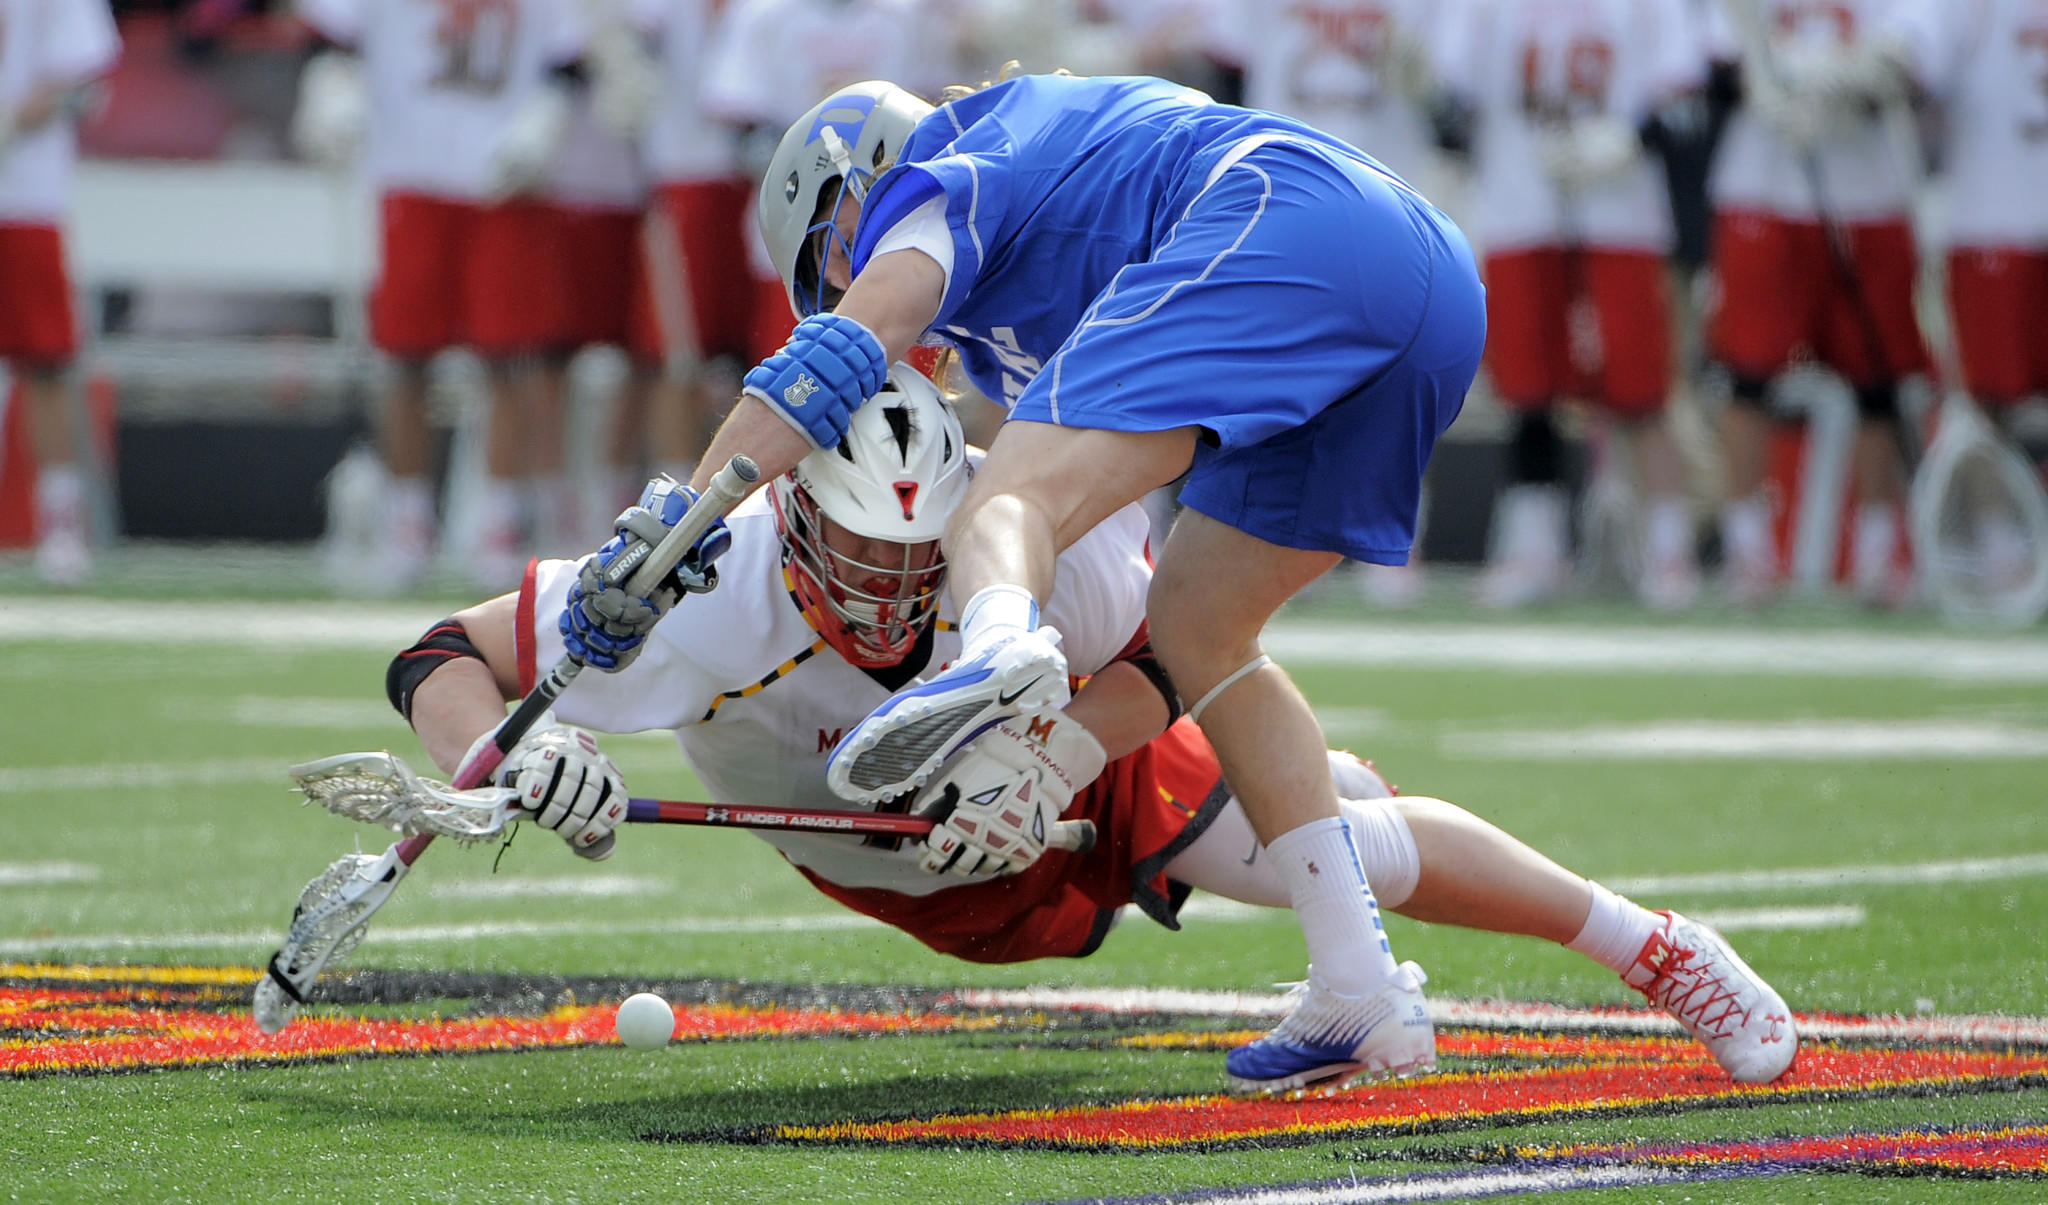 Charlie Raffa of Maryland, bottom, and Brendan Fowler of Duke vie for the ball during a faceoff in the third quarter March 1. Maryland won the game 10-6.